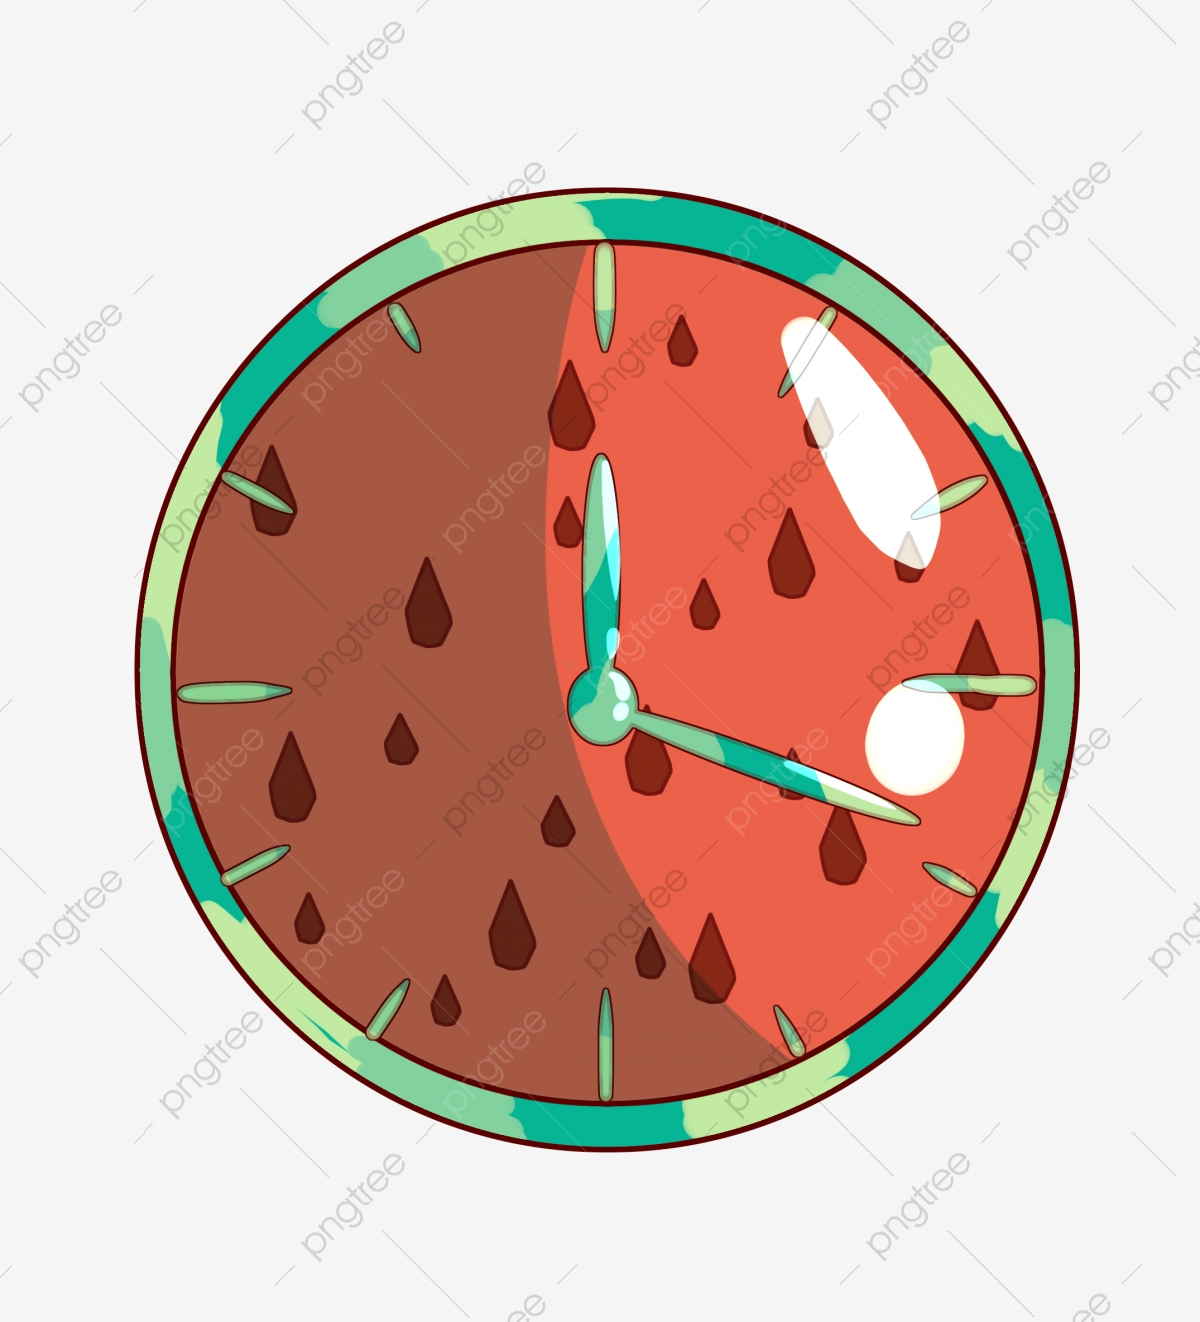 Red Round Clock Illustration Red Clocks Round Clocks Cute